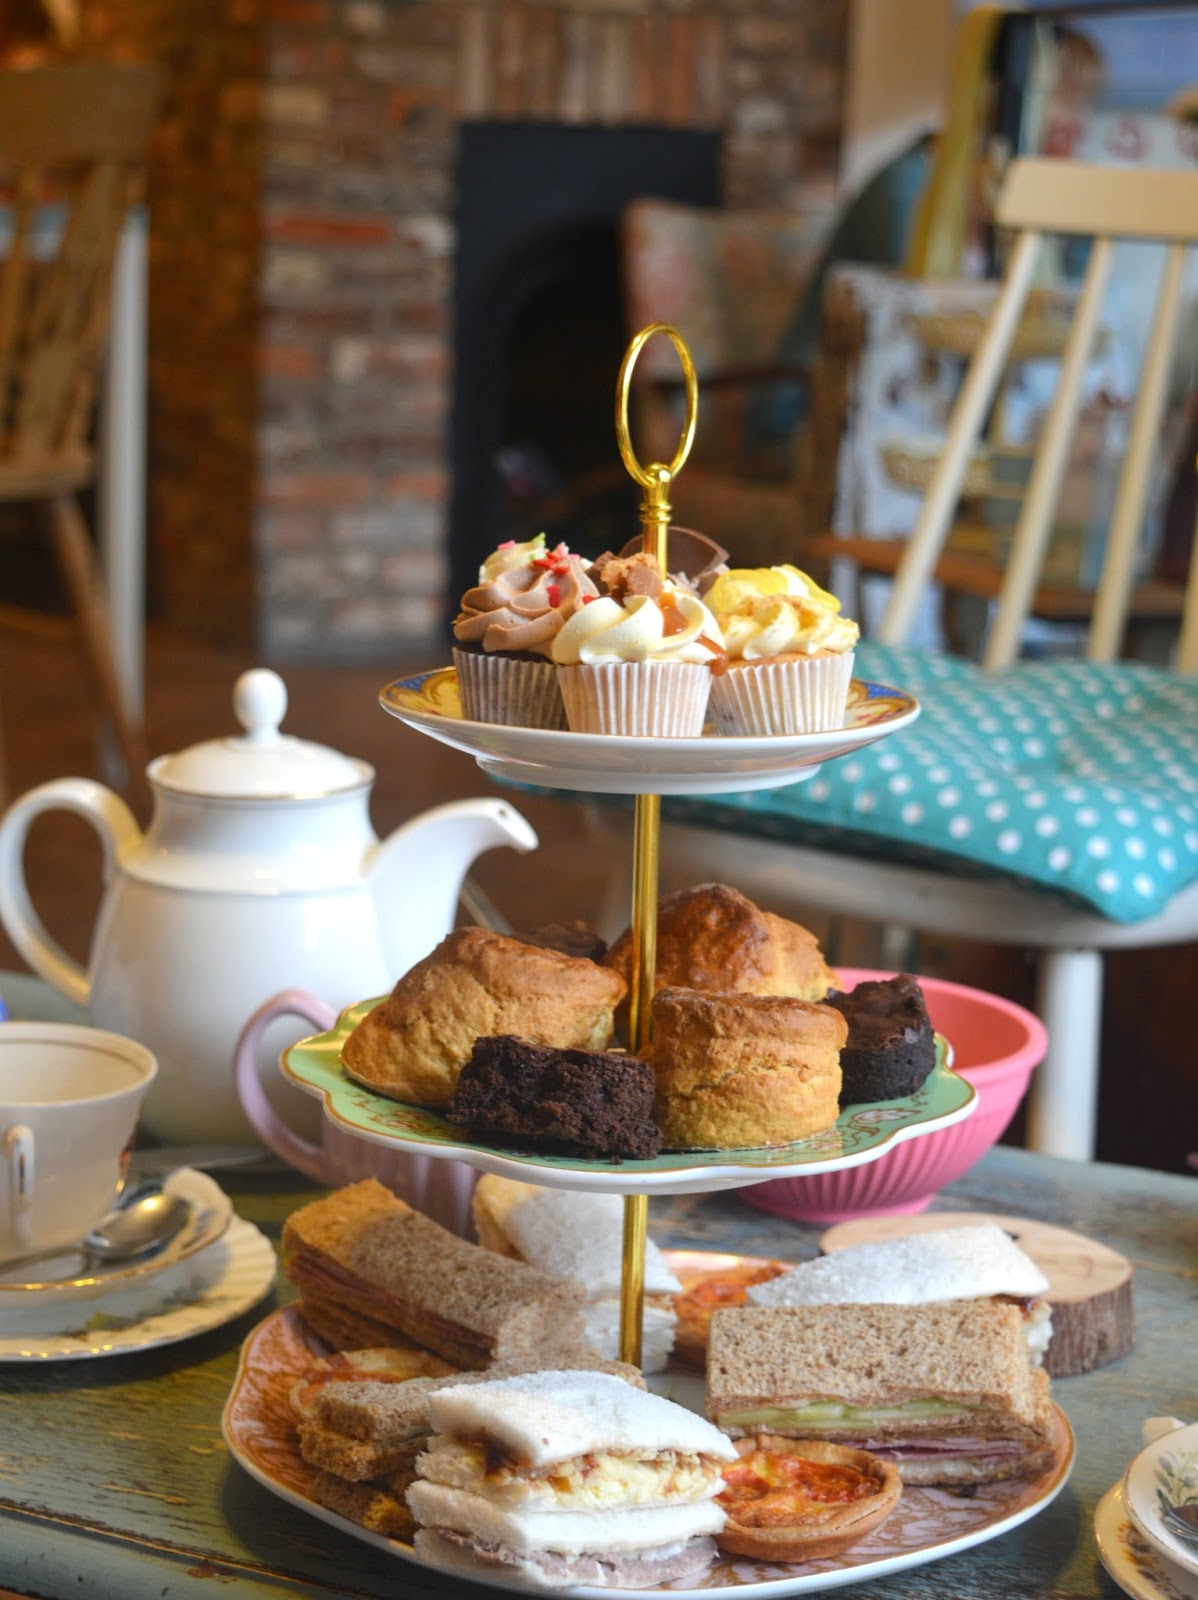 10 Reasons Why I LOVE Afternoon Tea